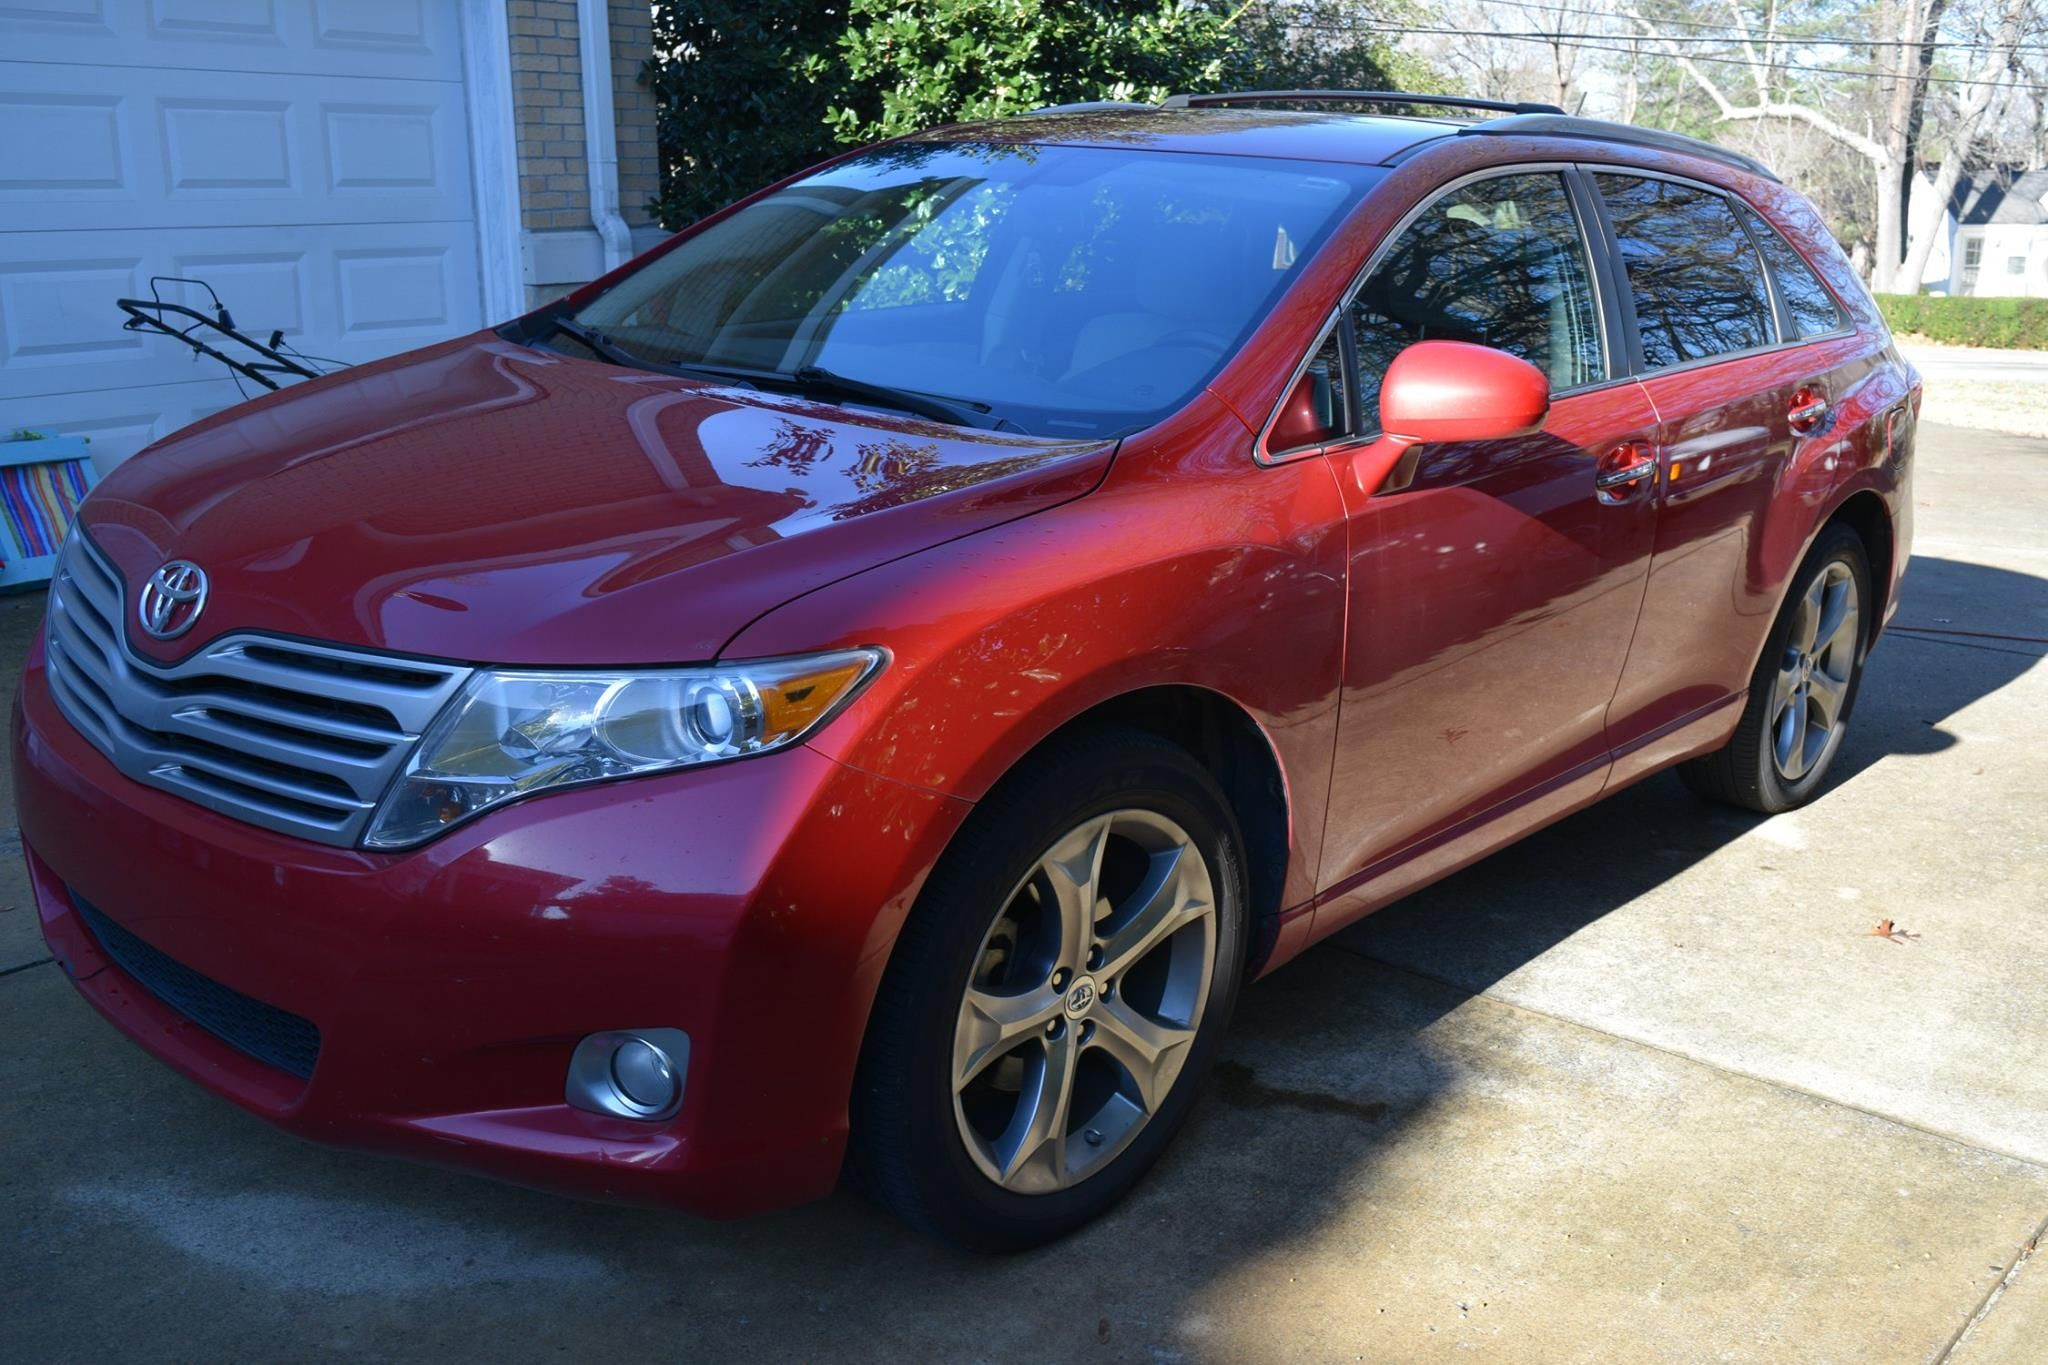 Toyota Venza Interior Deep Clean and Exterior Detail autodetailing